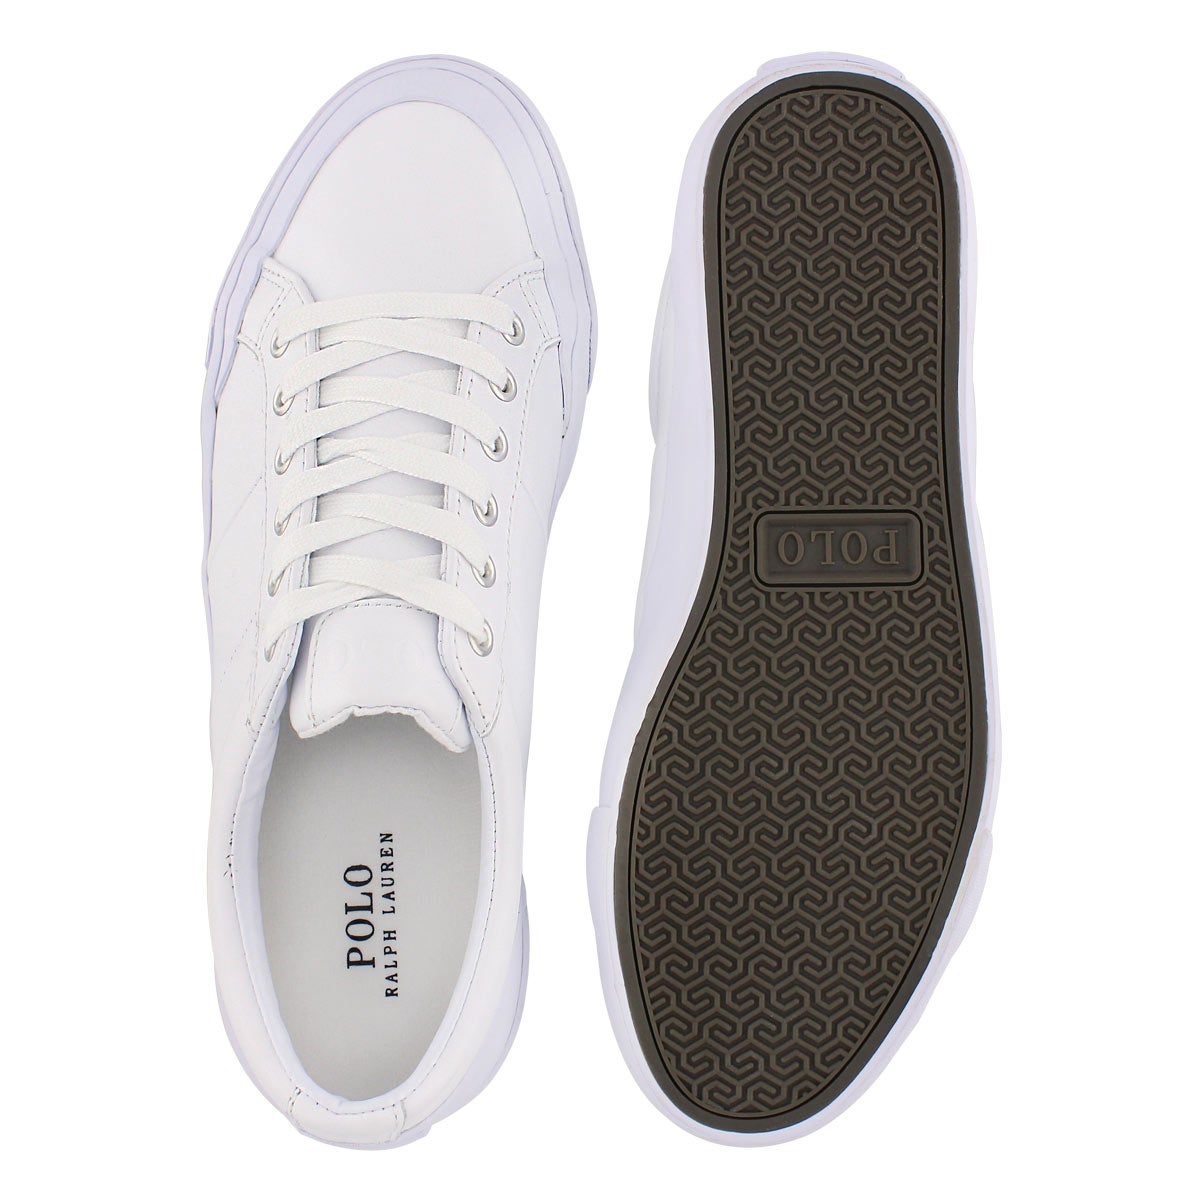 Mns Ian white leather lace up sneaker